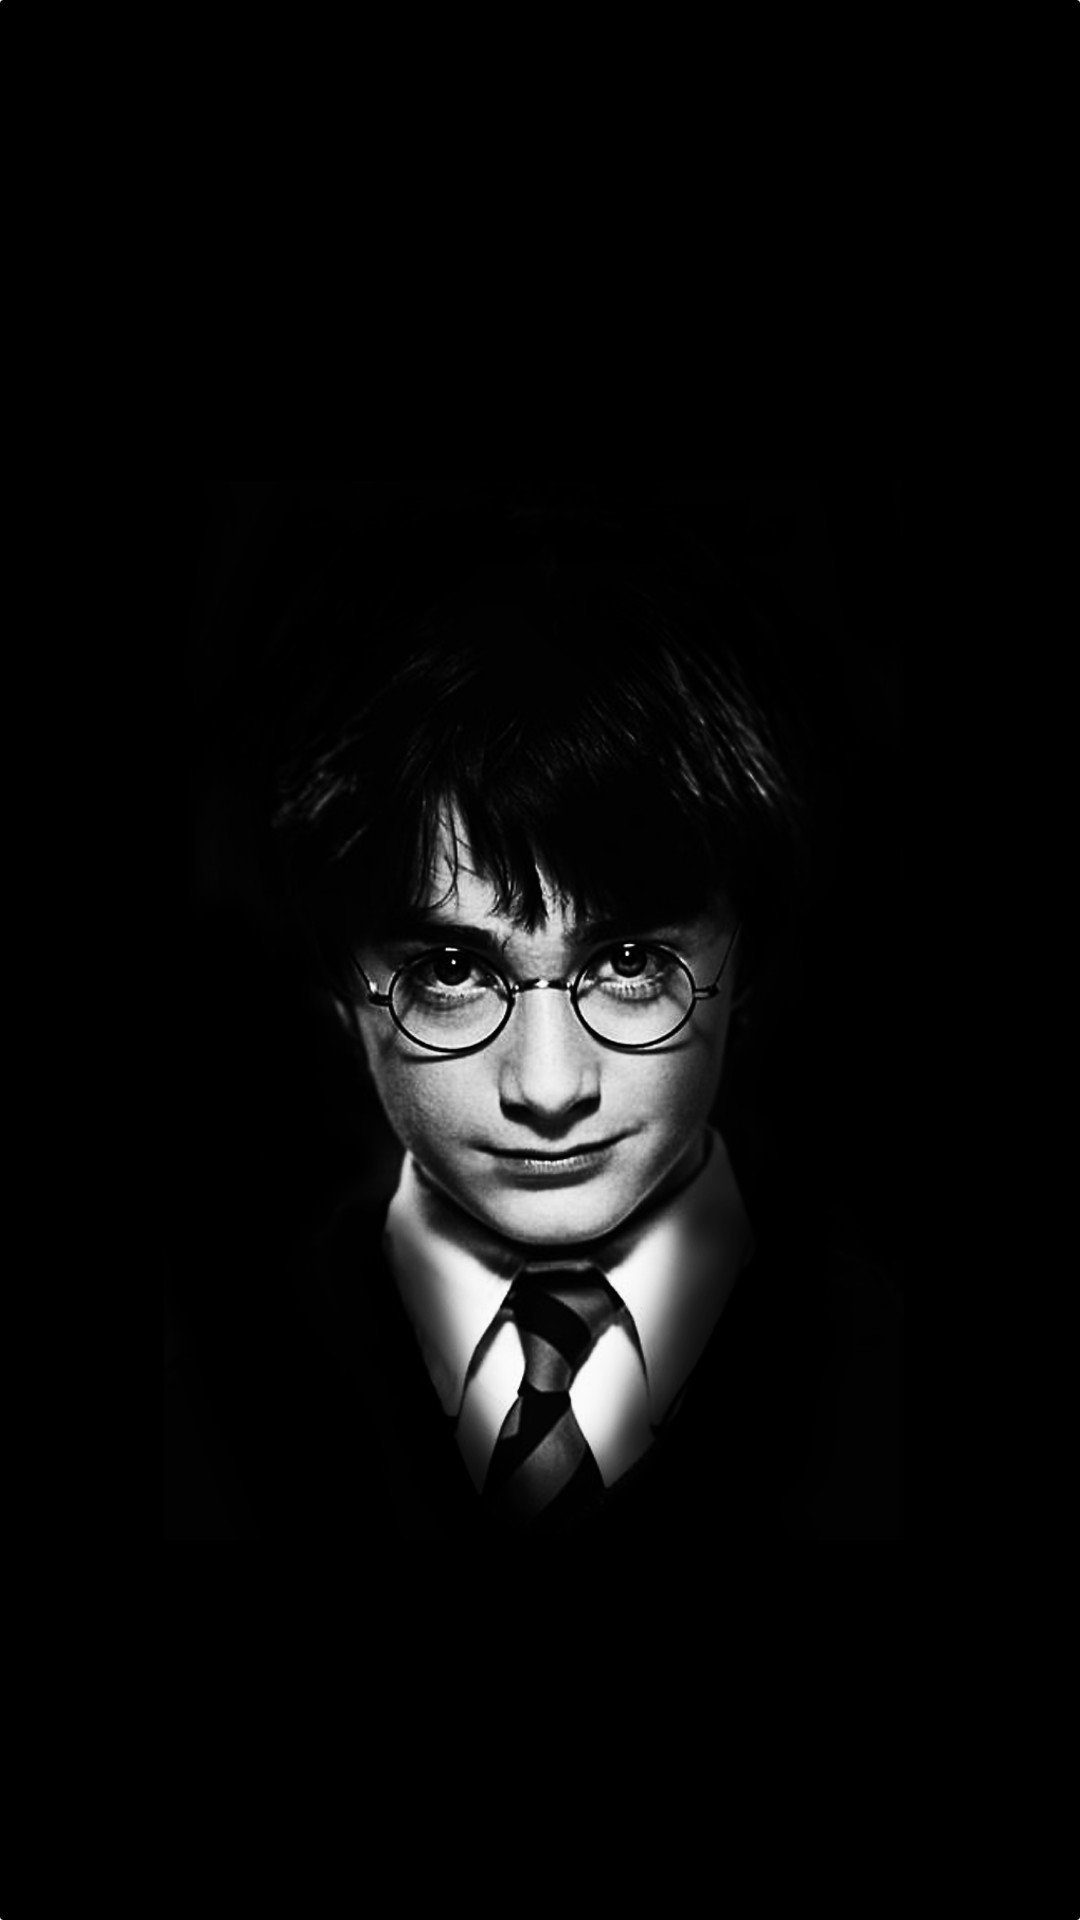 Most Inspiring Wallpaper Harry Potter Animated - 636381  Perfect Image Reference_487859.jpg